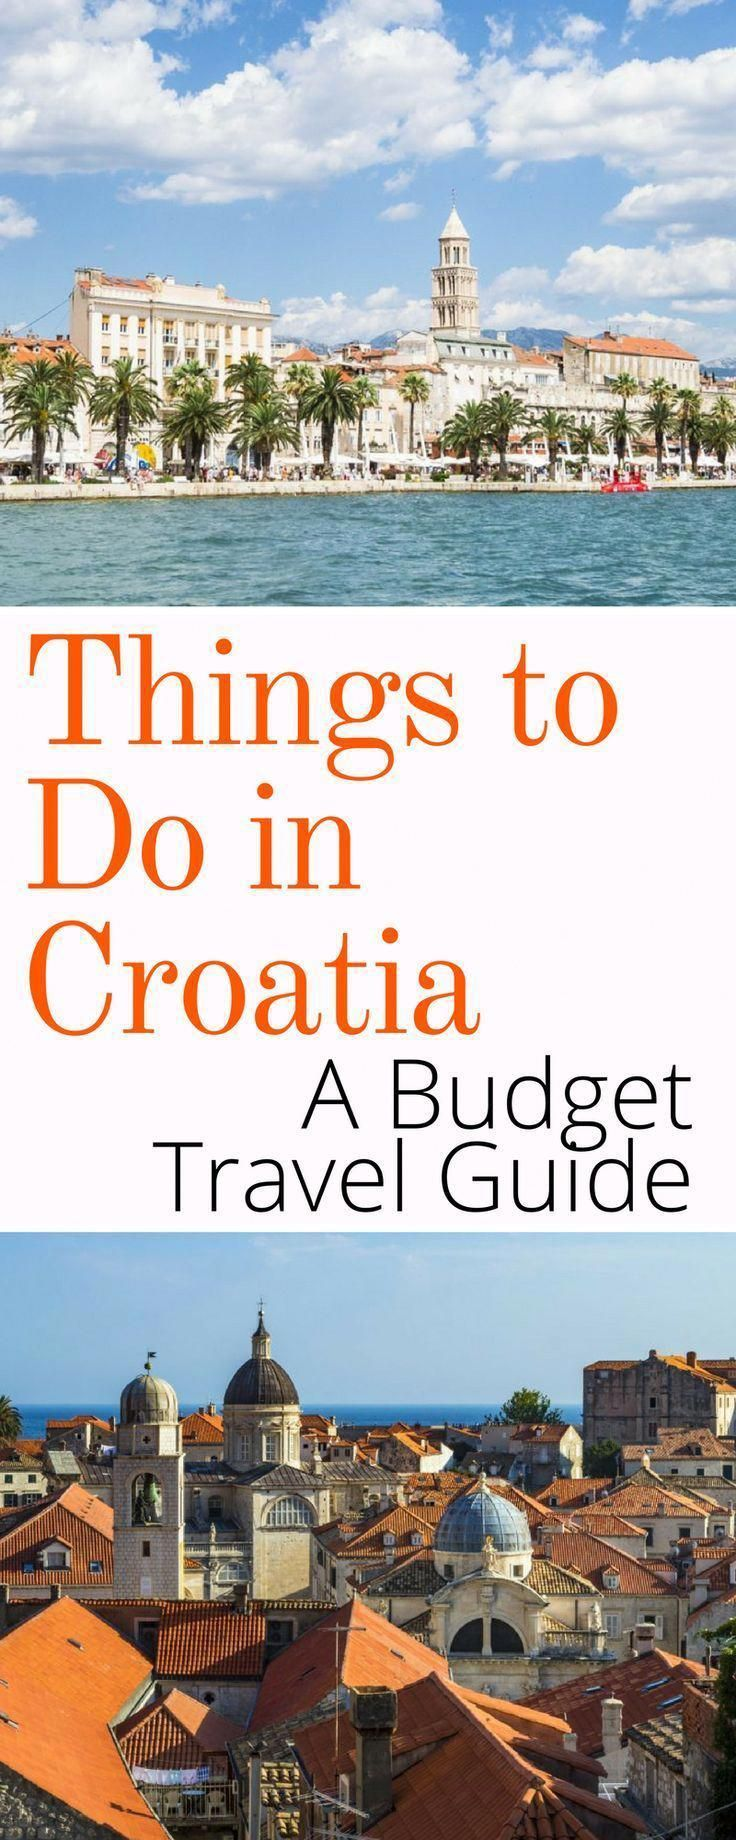 Croatia Budget Travel Guide The Top Things To Do And Places To See In Croatia On A Budget Zagreb Travel Destinations European Us Travel Destinations Travel